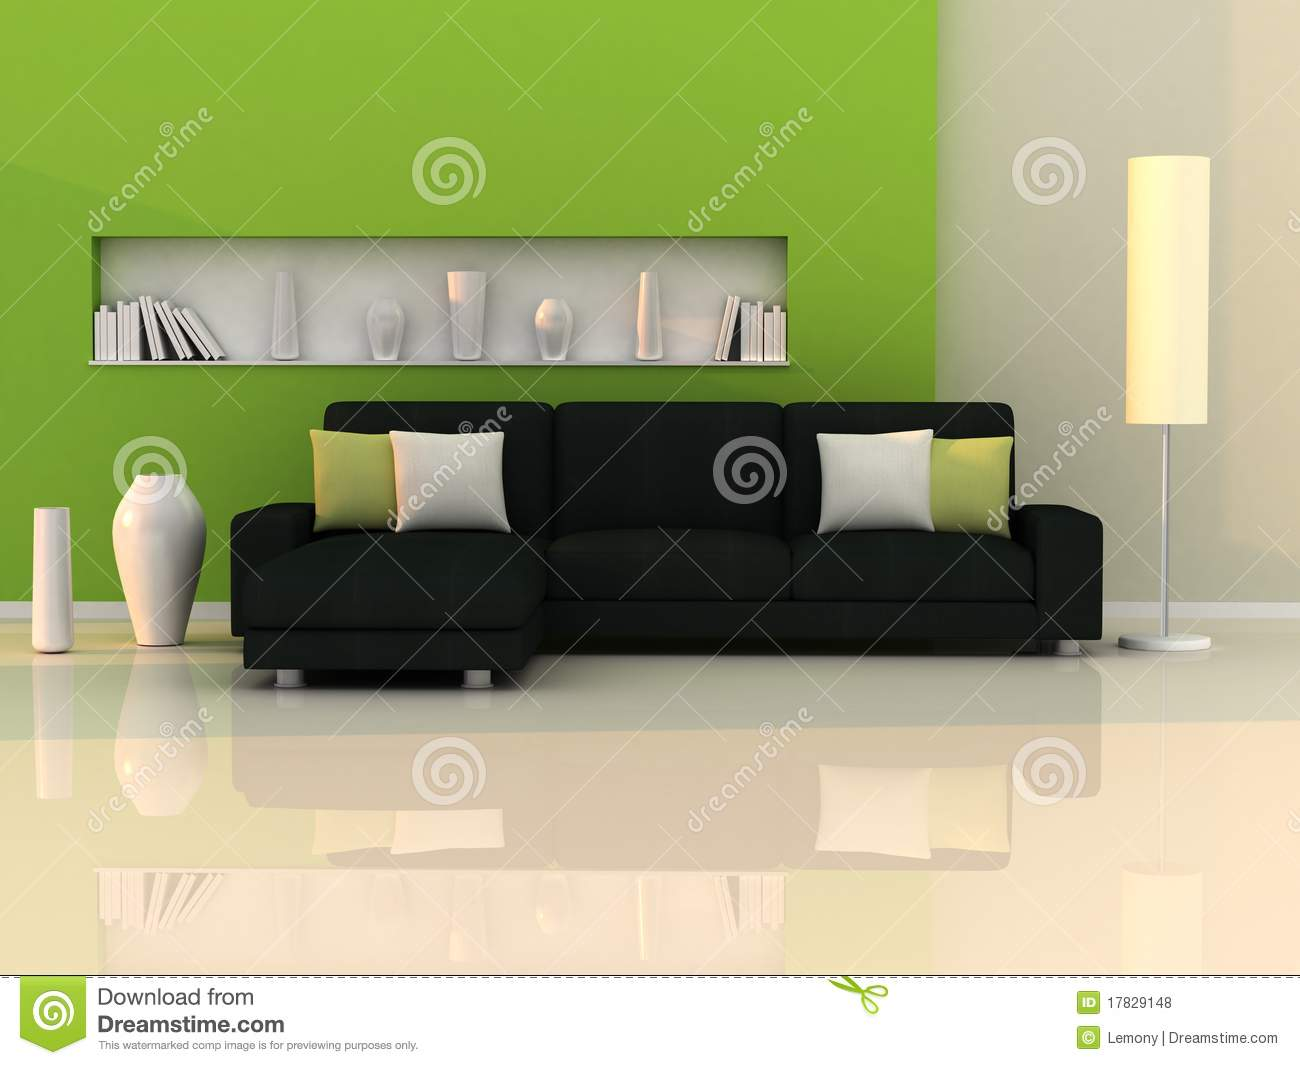 interior of the modern room green wall black sofa stock illustration image 17829148. Black Bedroom Furniture Sets. Home Design Ideas